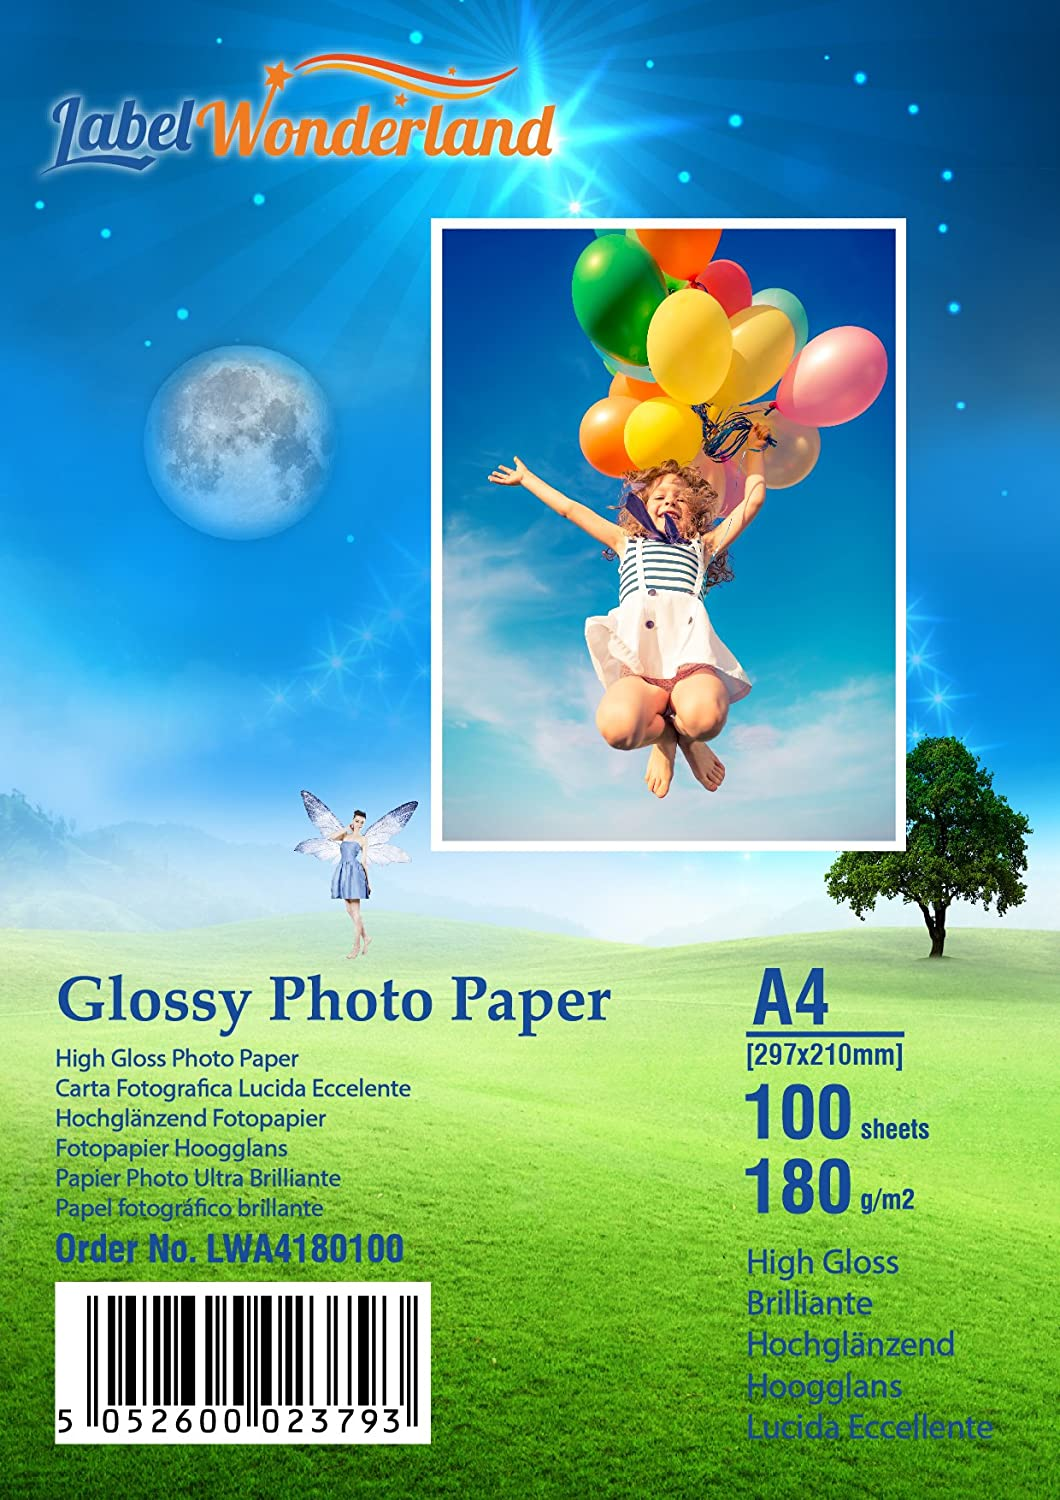 100 Sheets 180 GSM High Gloss A4 (210 mm x 297 mm) Photo Paper for Inkjet Printers Glossy LW uk reviews